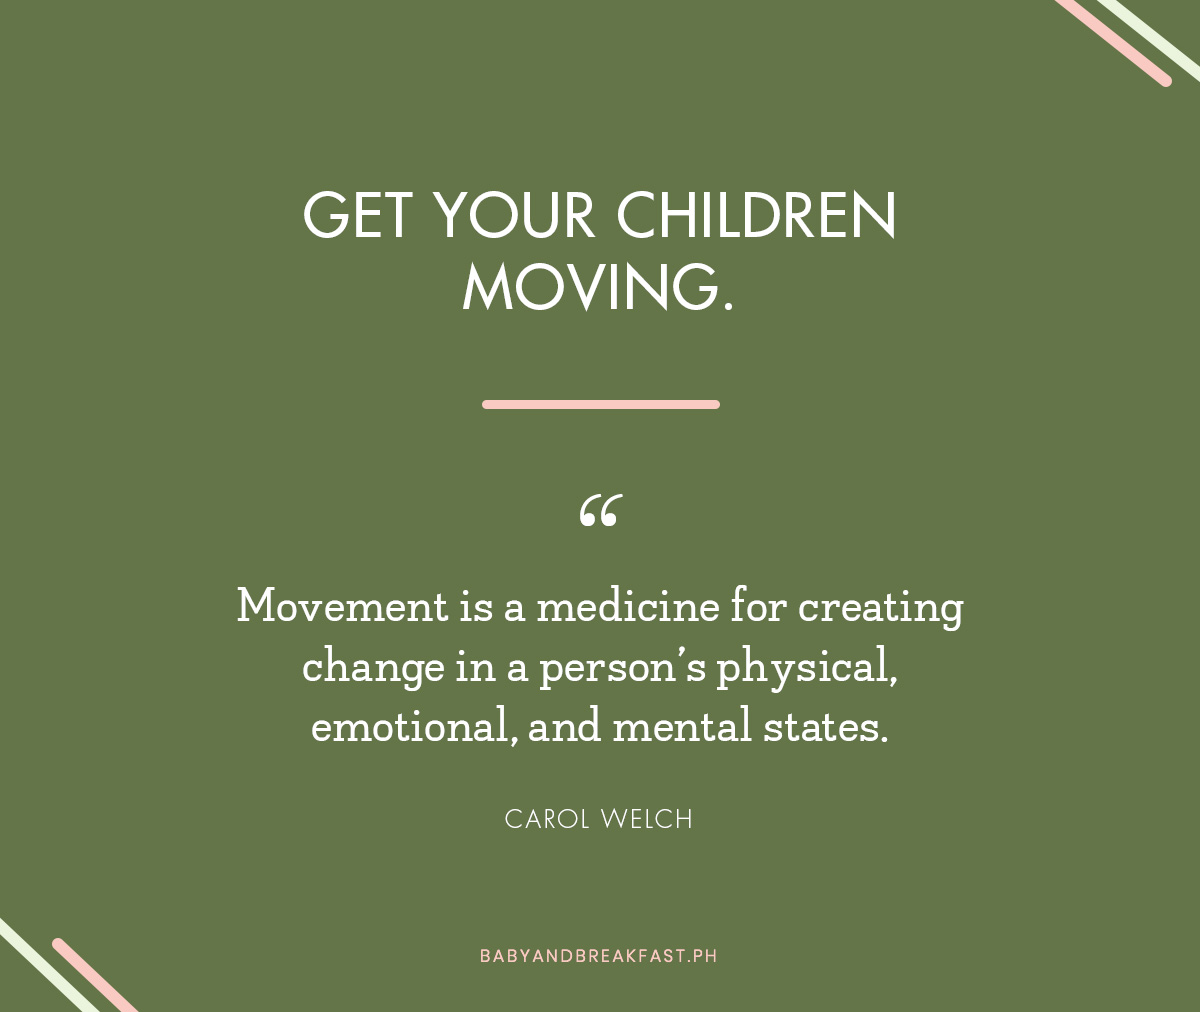 "Get your children moving. ""Movement is a medicine for creating change in a person's physical, emotional, and mental states."" - Carol Welch"